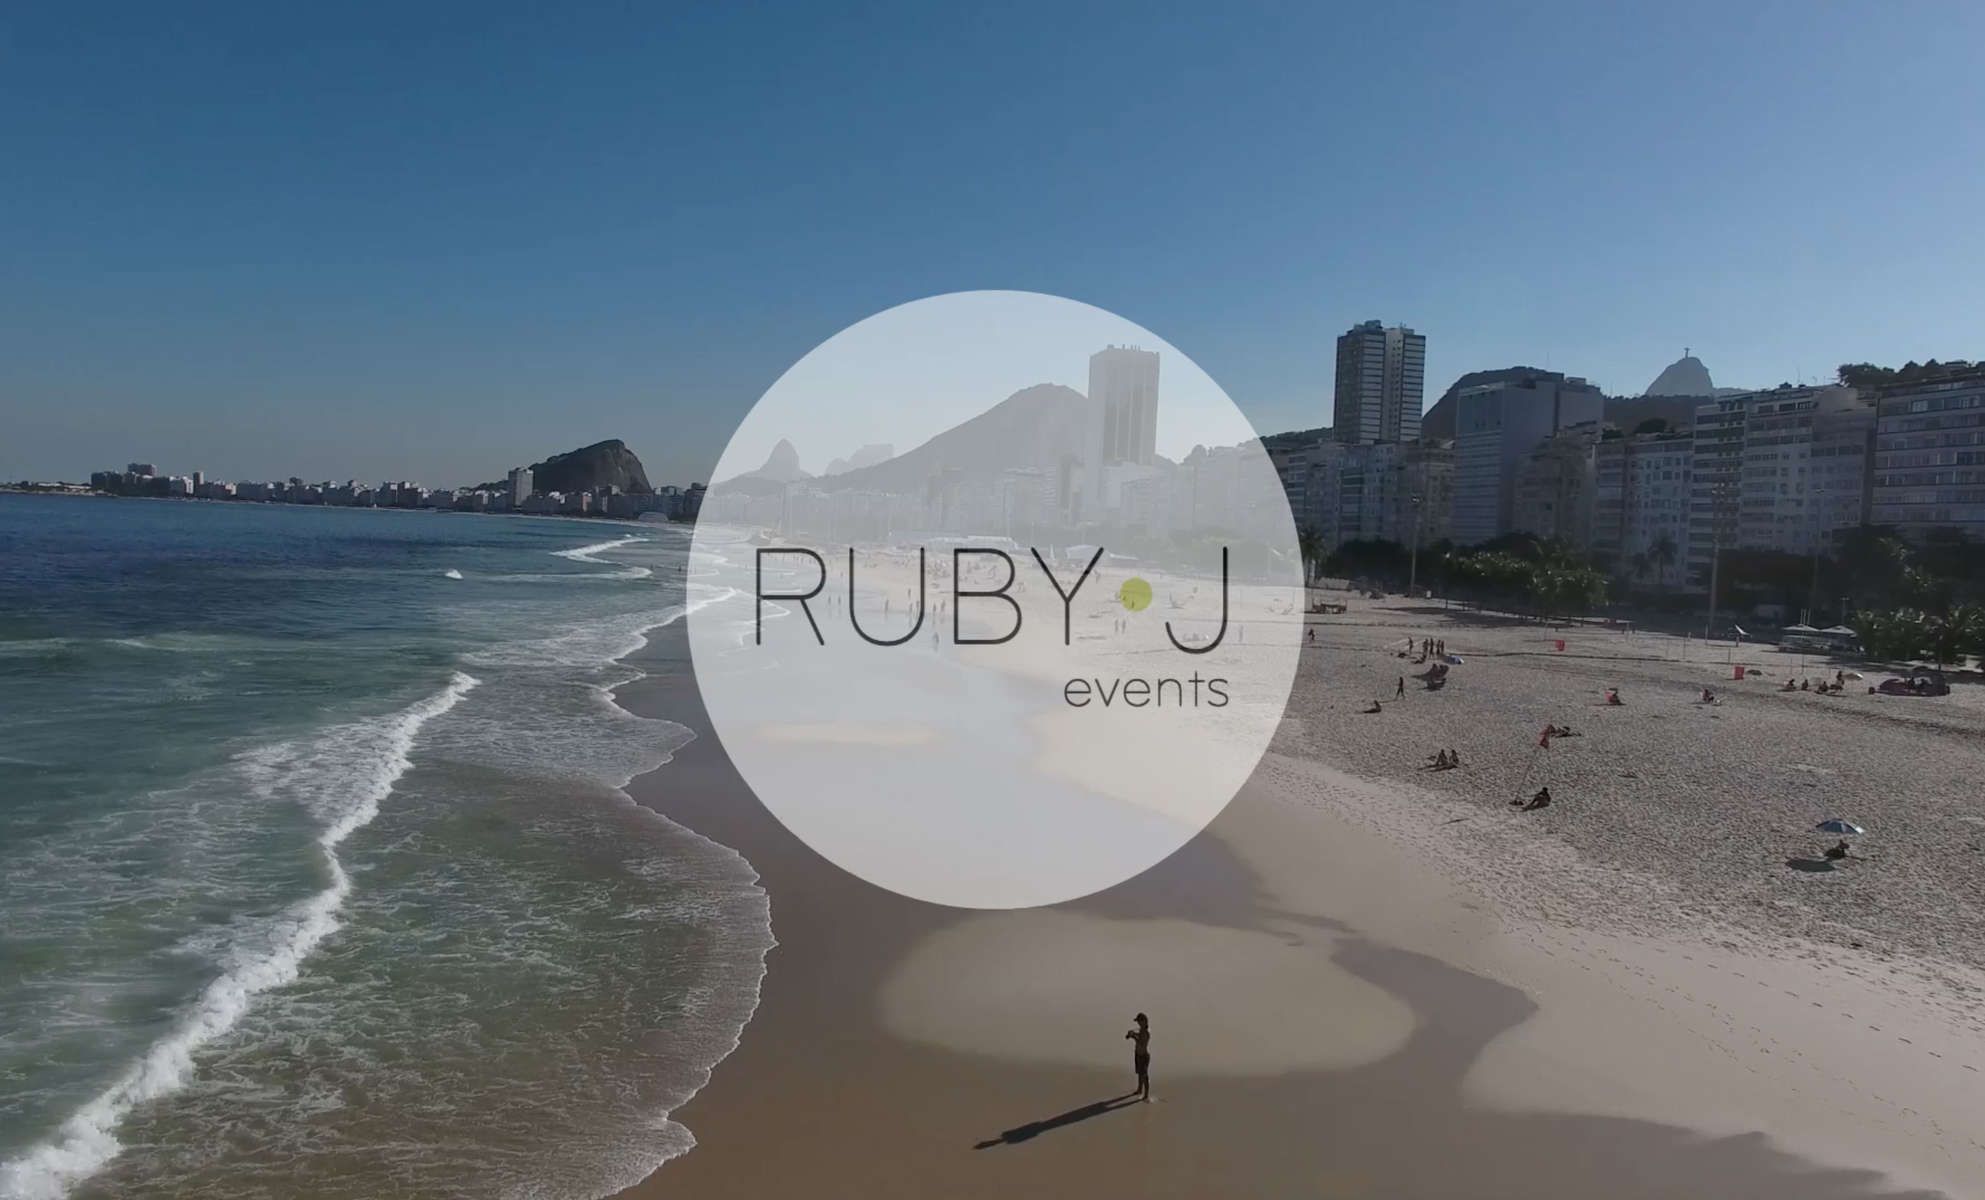 {quote}OLYMPIC GAMES RIO DE JANEIRO 2016{quote} | CLIENT: RUBY EVENTS | CAMINITOFILMS: PRODUCTION, CINEMATOGRAPHY & EDIT / EDER NEVES-NOS2FILMS